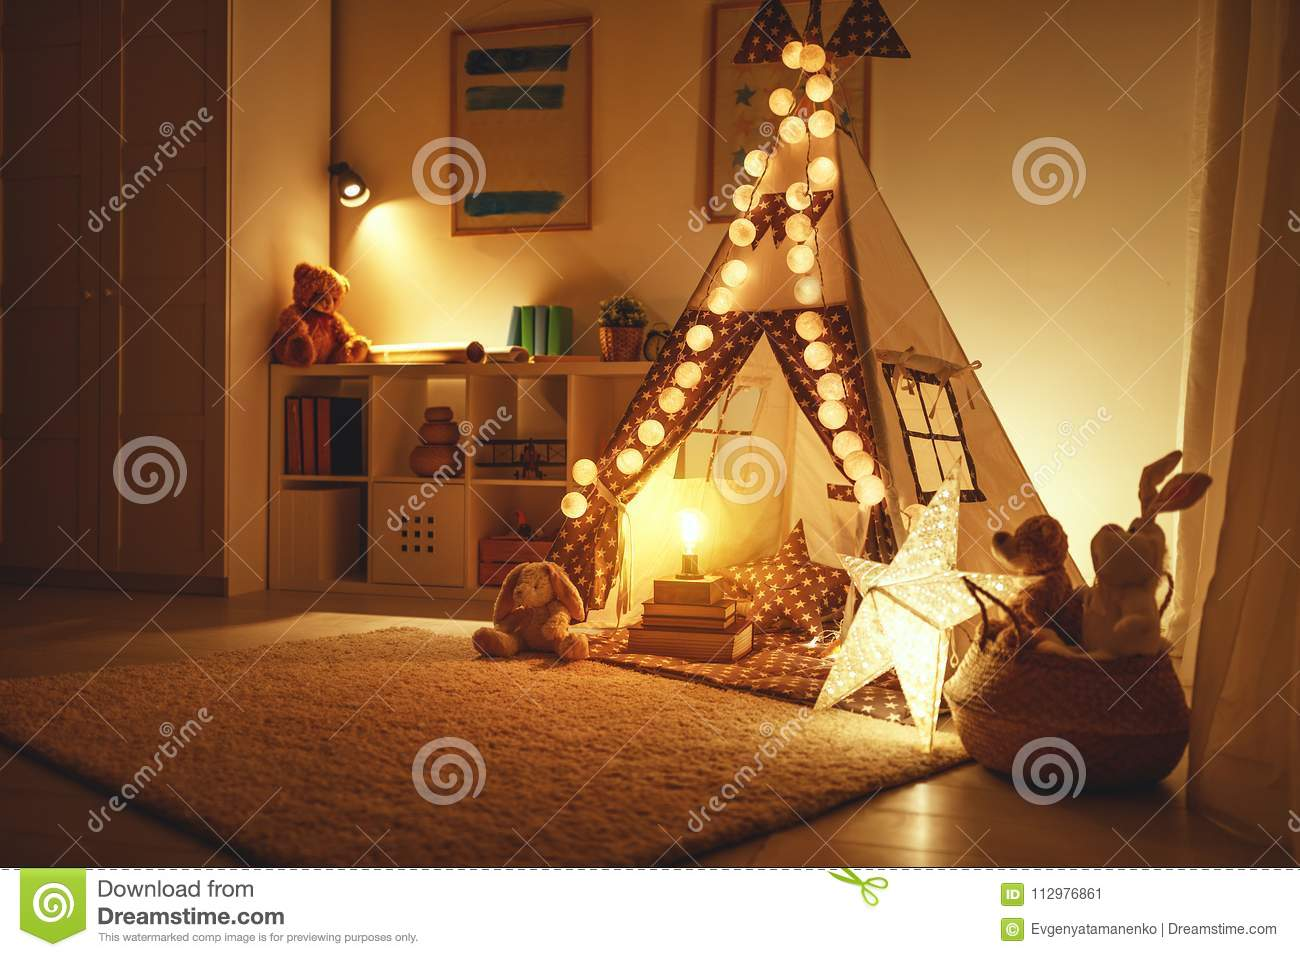 Interior of children`s playroom with tent, lamps and toys in dar